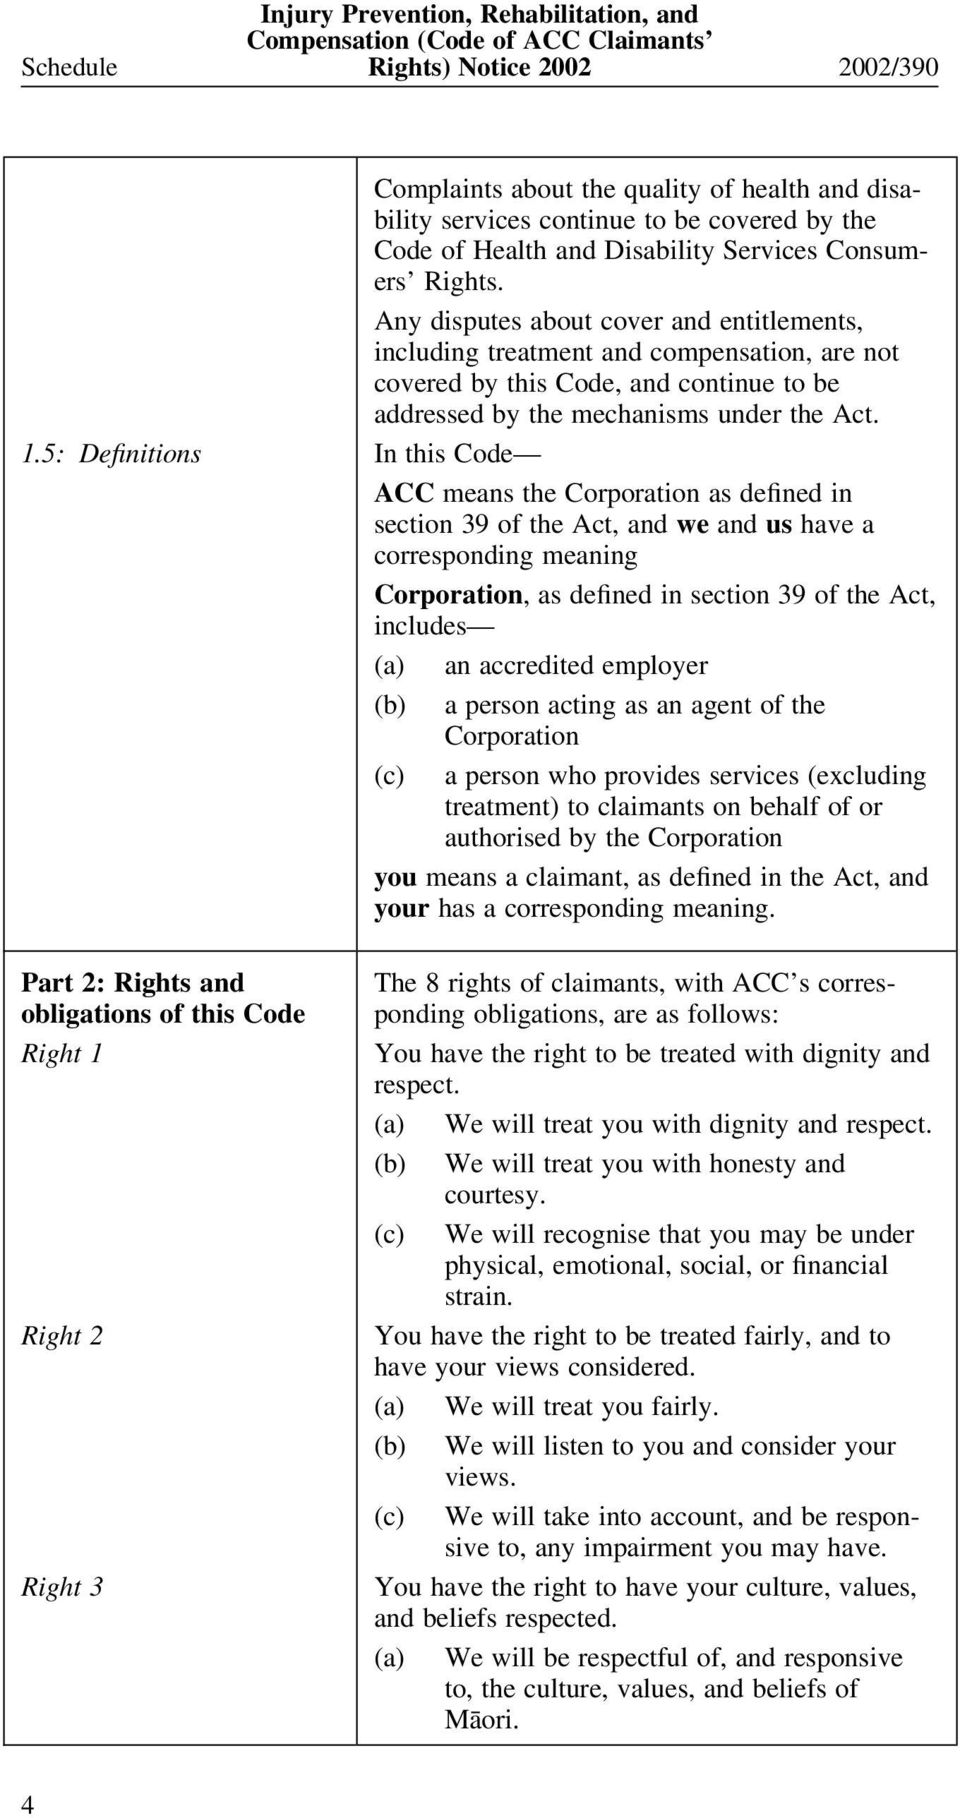 5: Definitions In this Code ACC means the Corporation as defined in section 39 of the Act, and we and us have a corresponding meaning Corporation, as defined in section 39 of the Act, includes (a) an